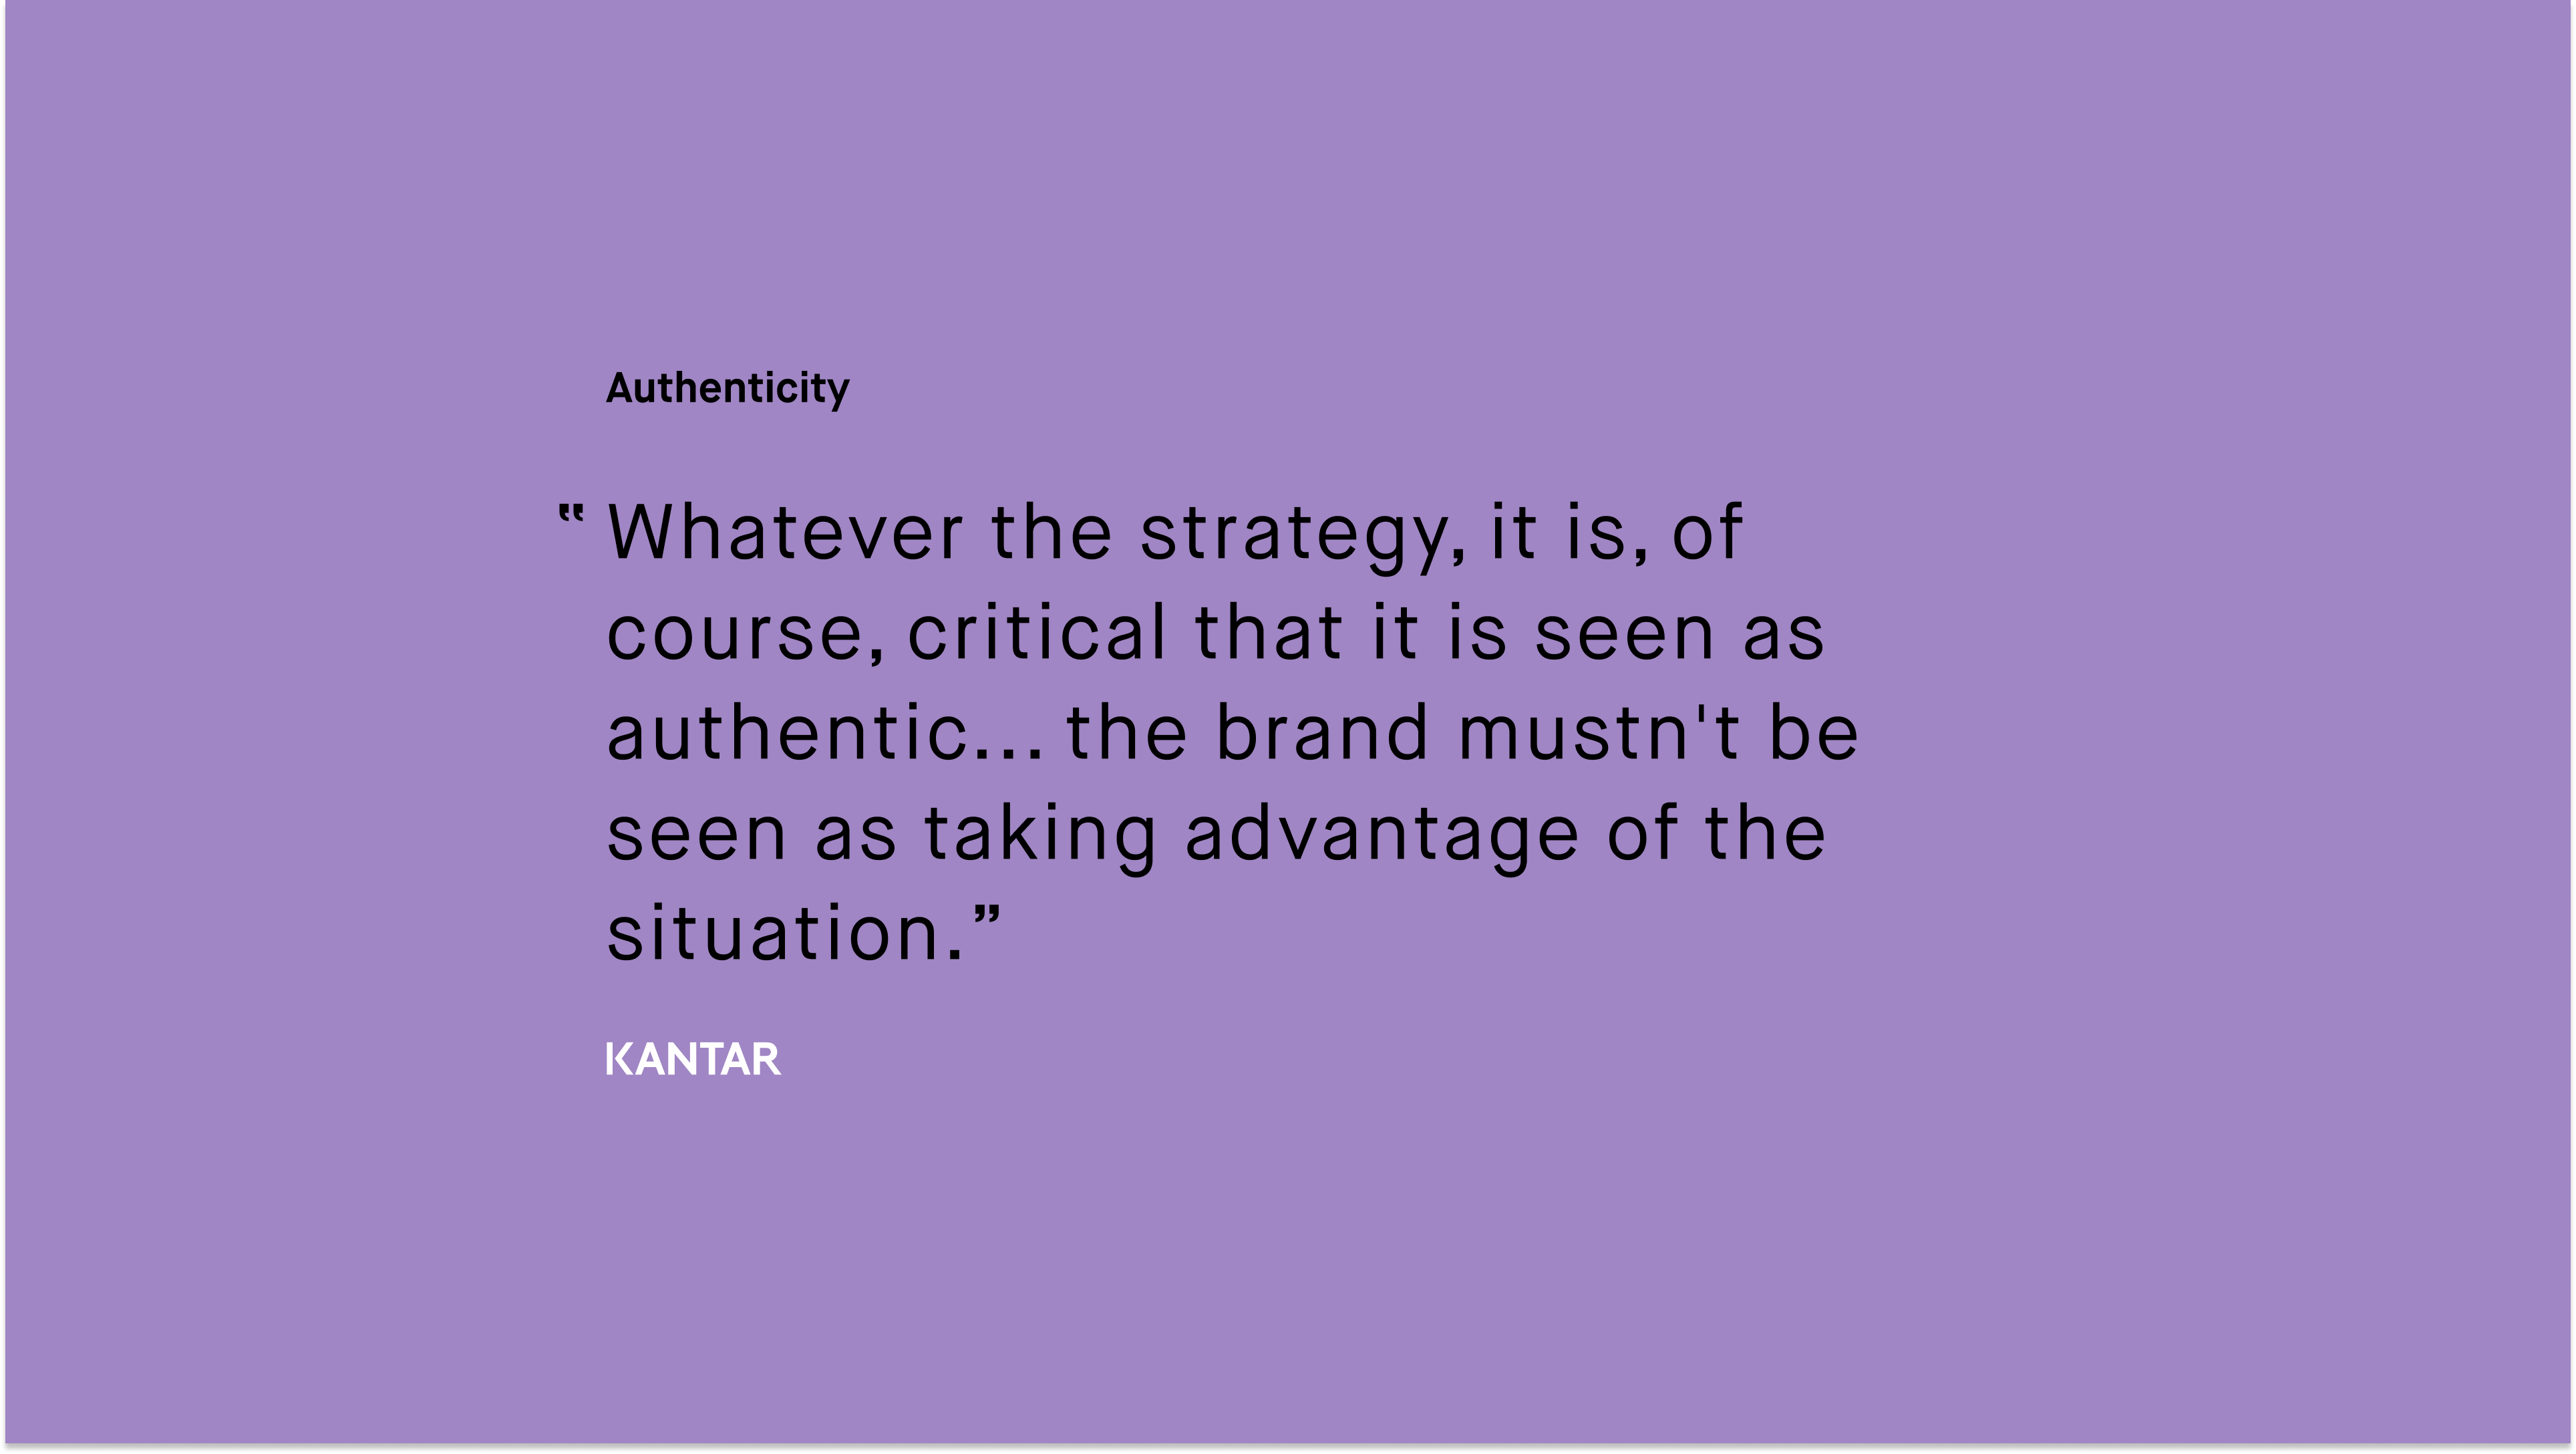 #paid_Kantar_Whatever the strategy it is of course critical that it is seen as authentic